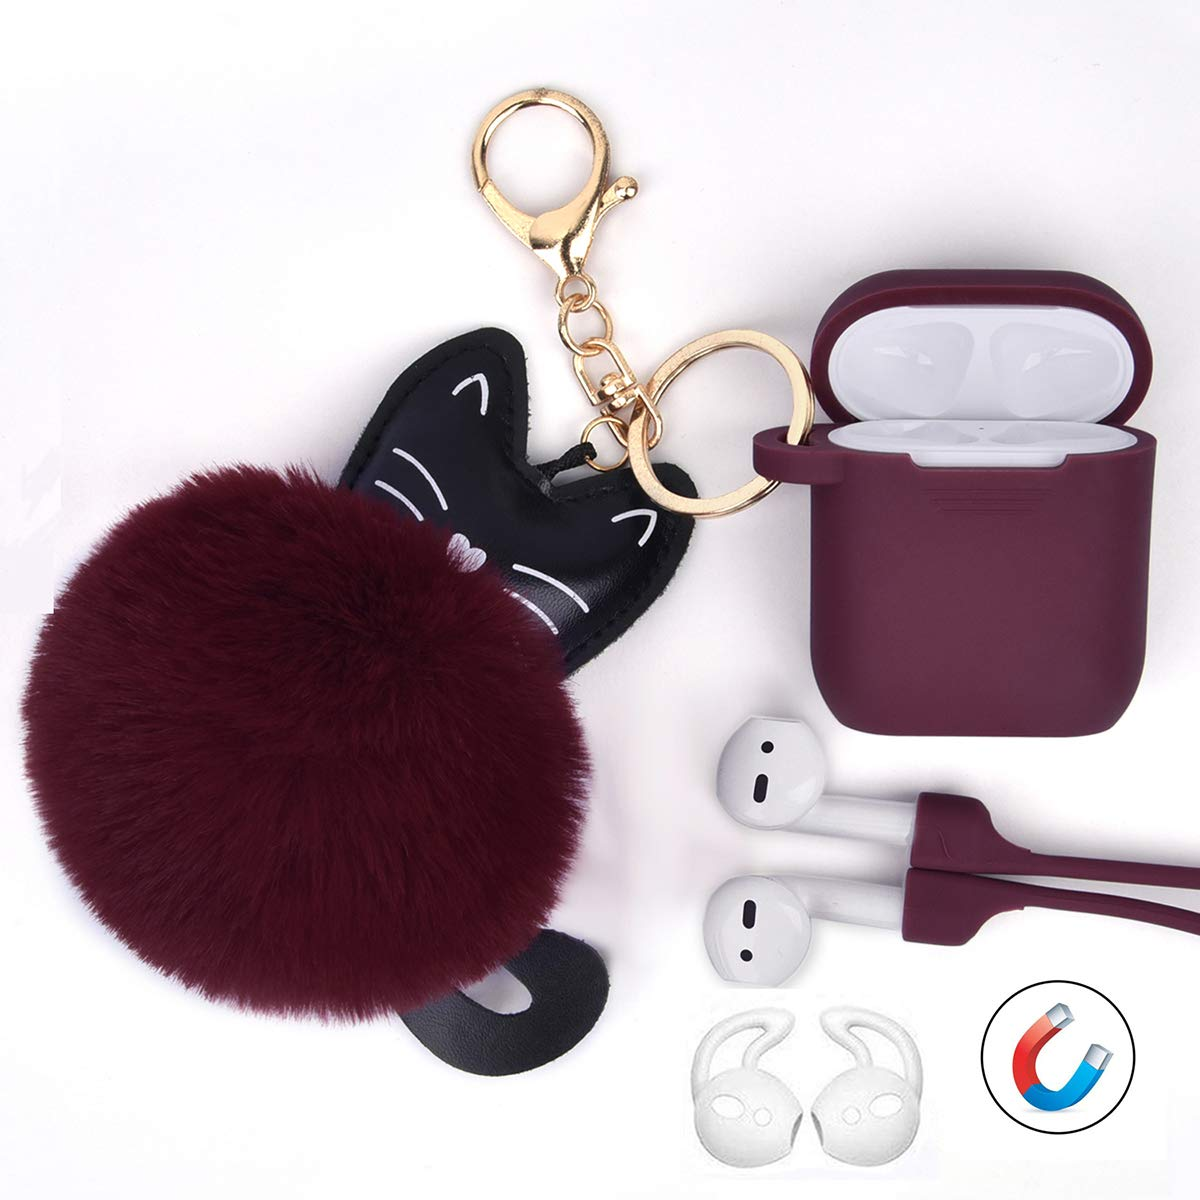 Amazon.com: Airpods Case - Funda de silicona para Airpods ...